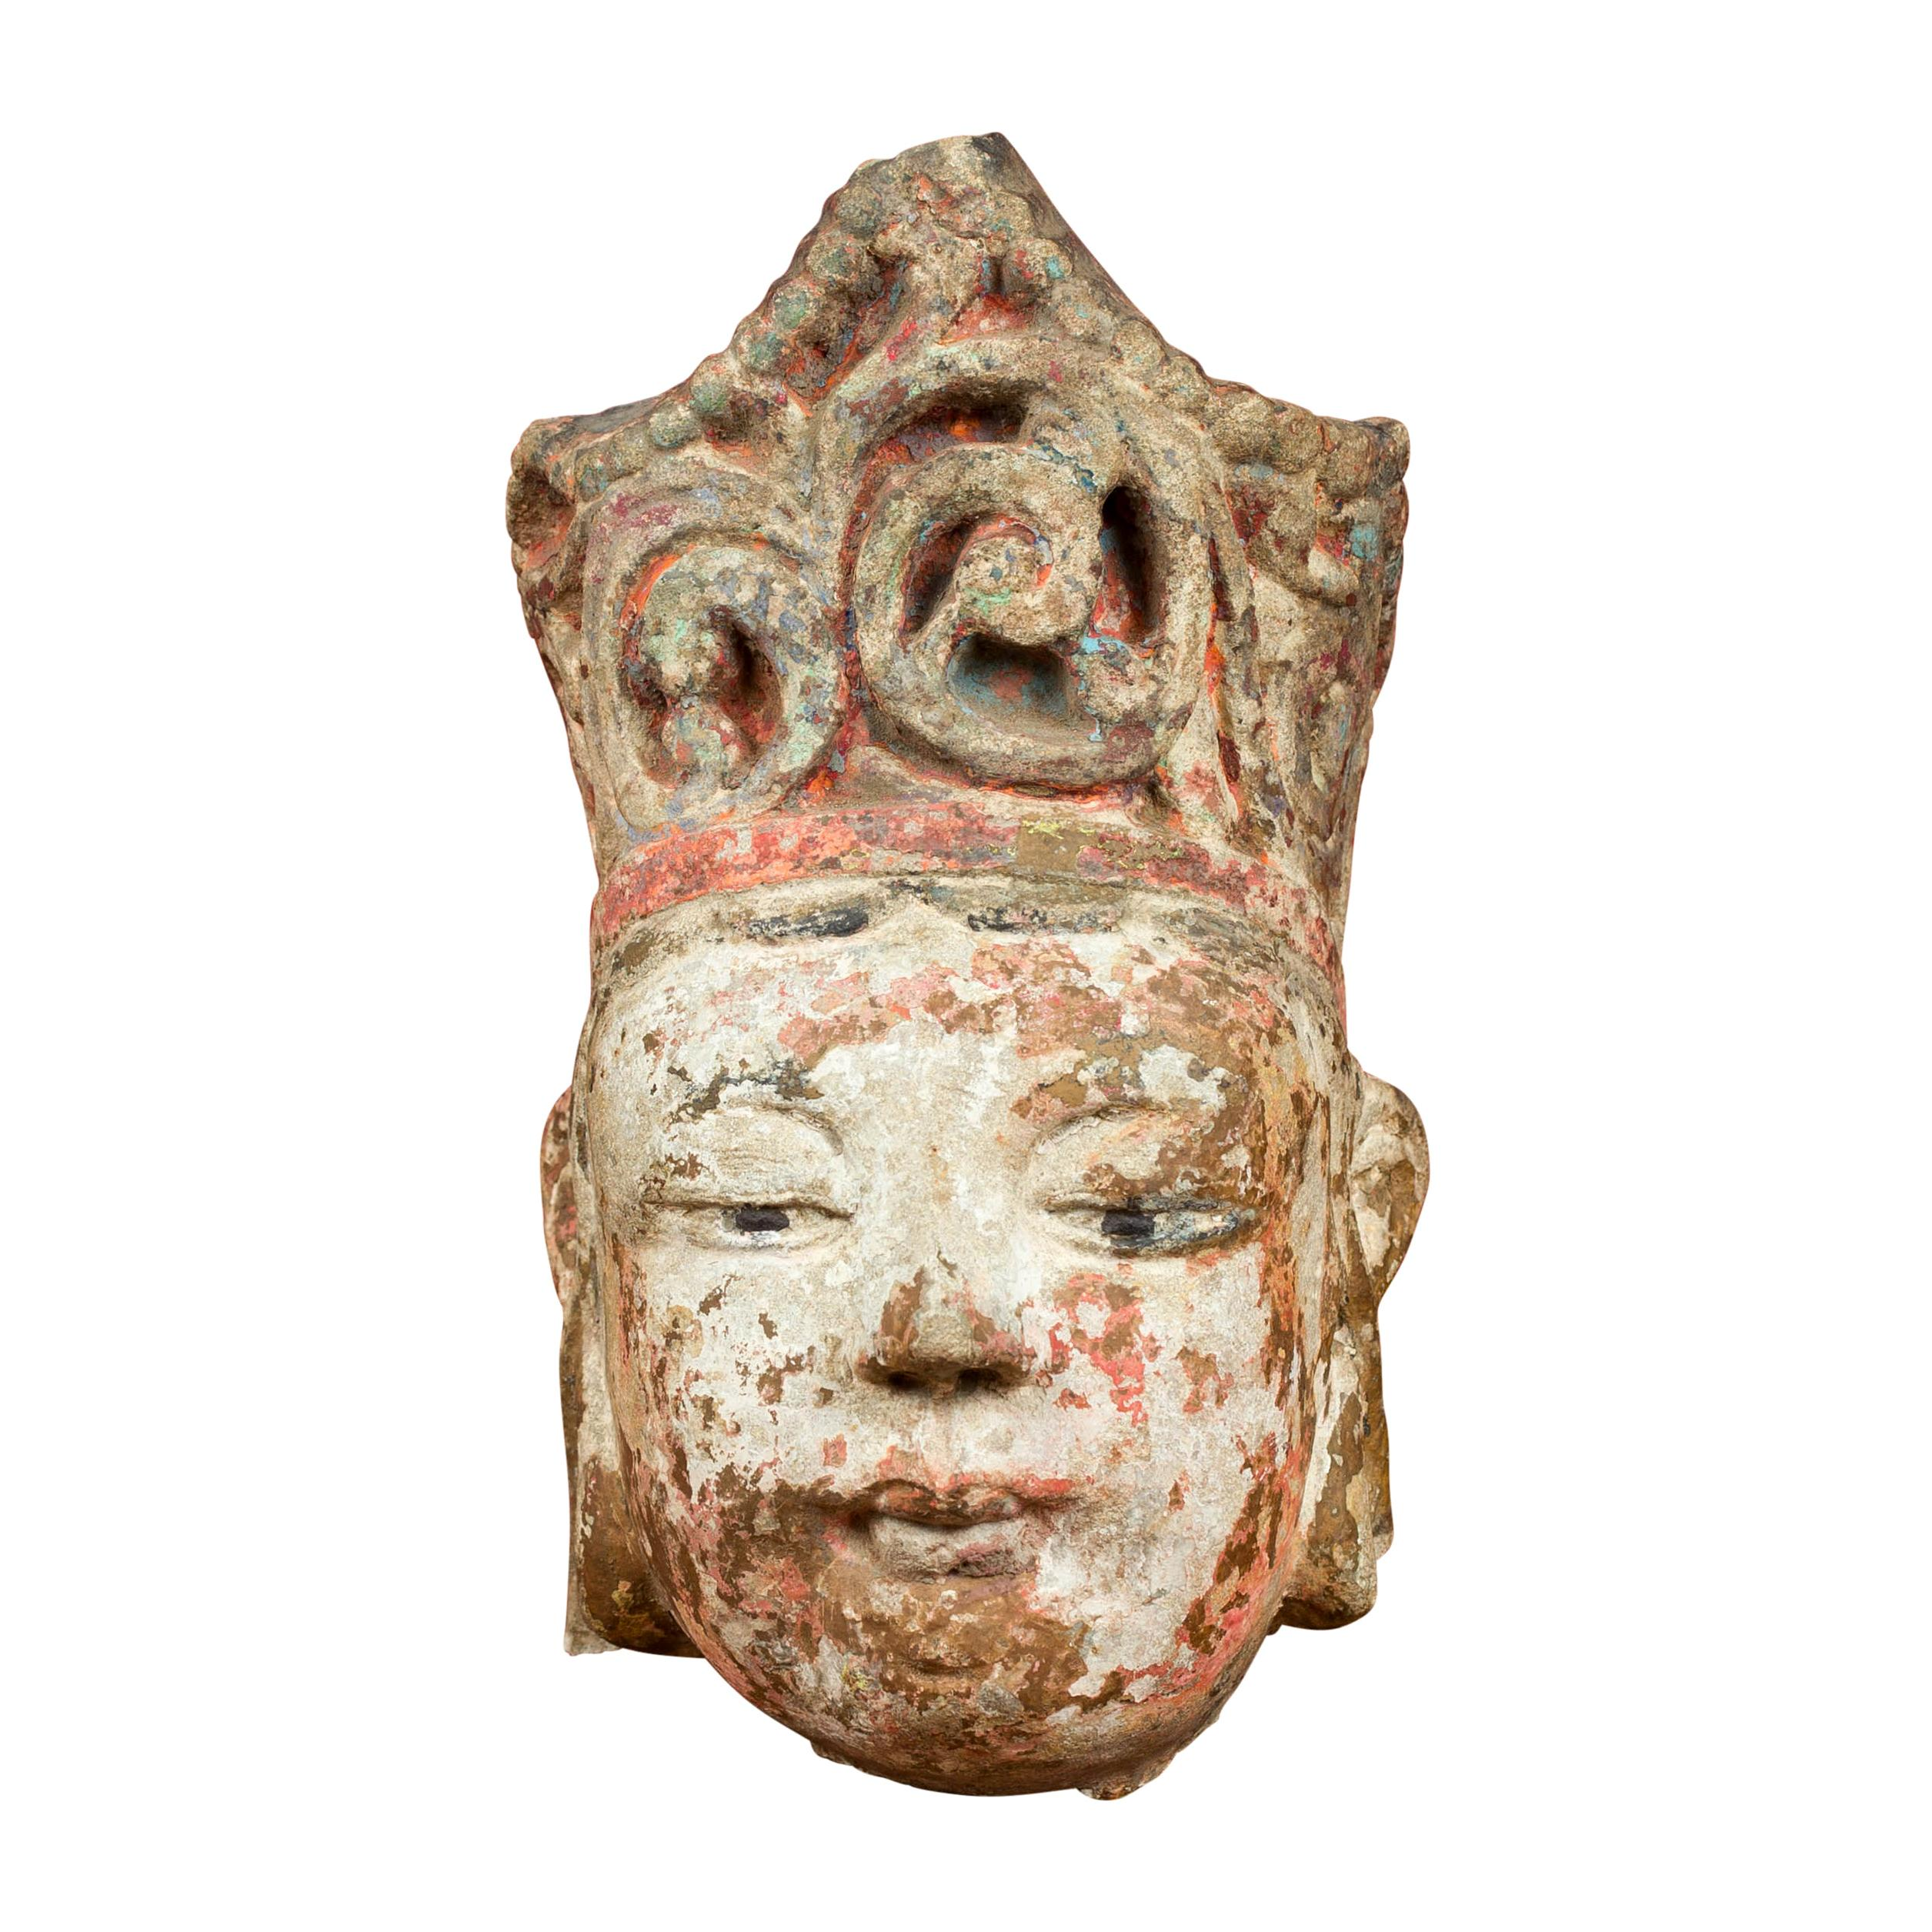 Chinese Qing Dynasty Carved Stone Court Figure Sculpture with Tall Headdress